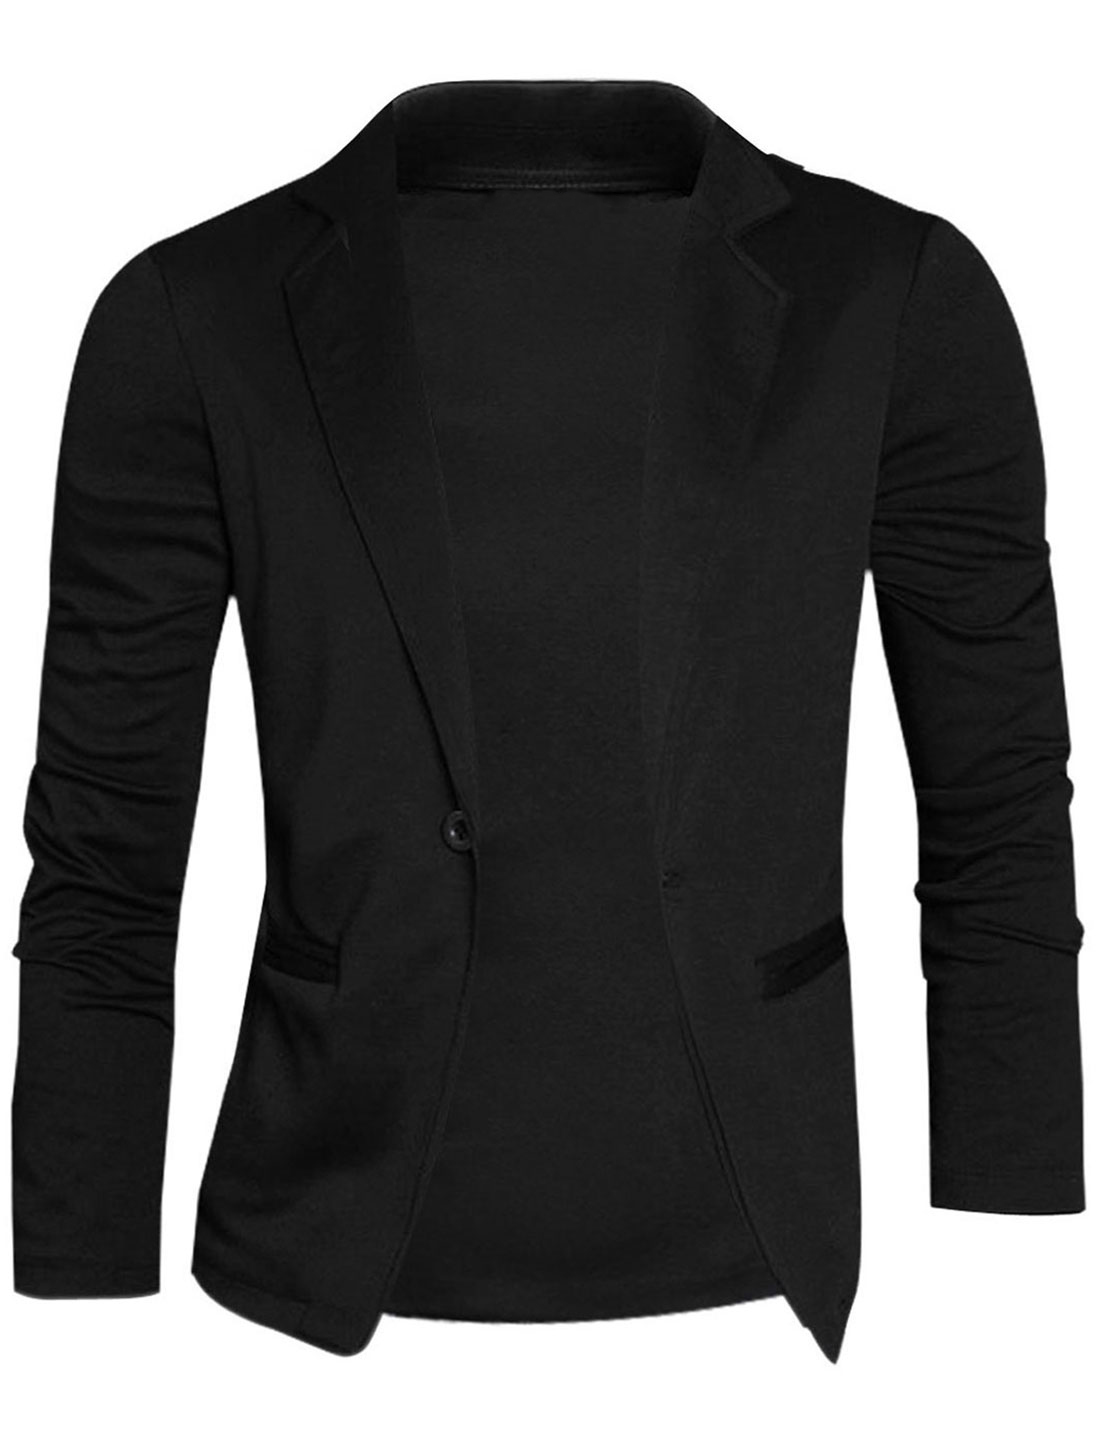 Men Stylish Newly Pockets Front Single Button Closure Blazer Black S